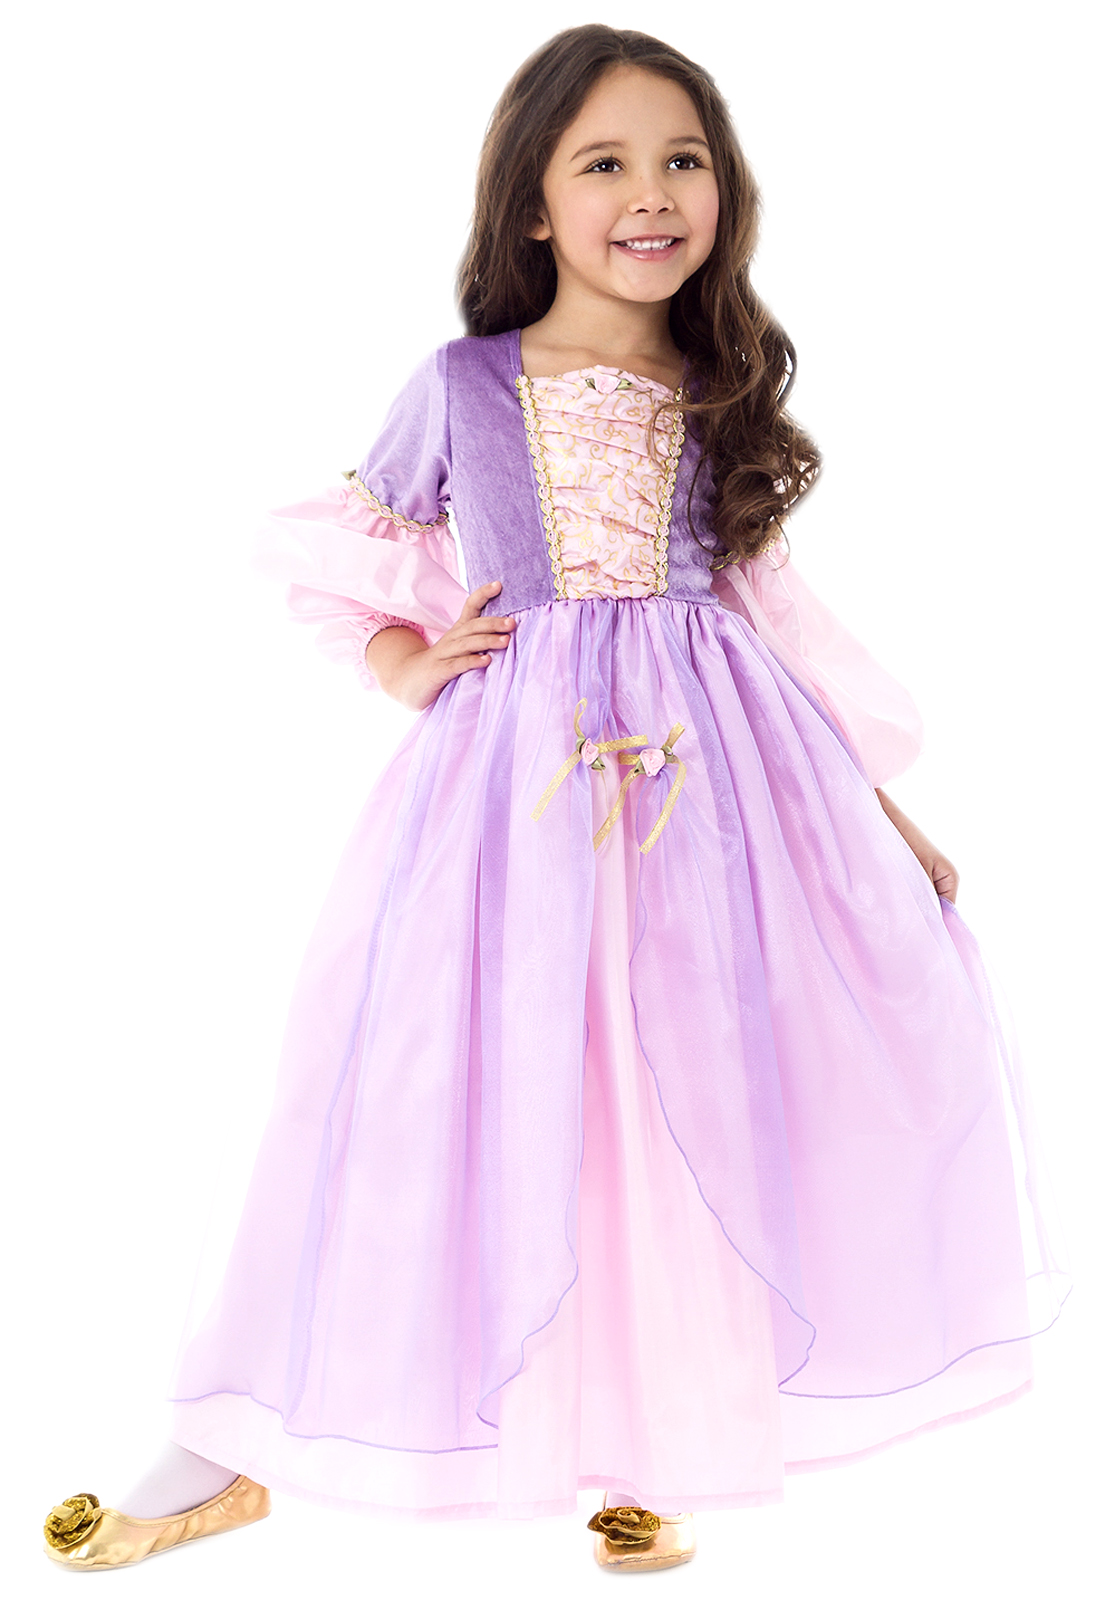 deluxe rapunzel dress up costume tangled inspired princess